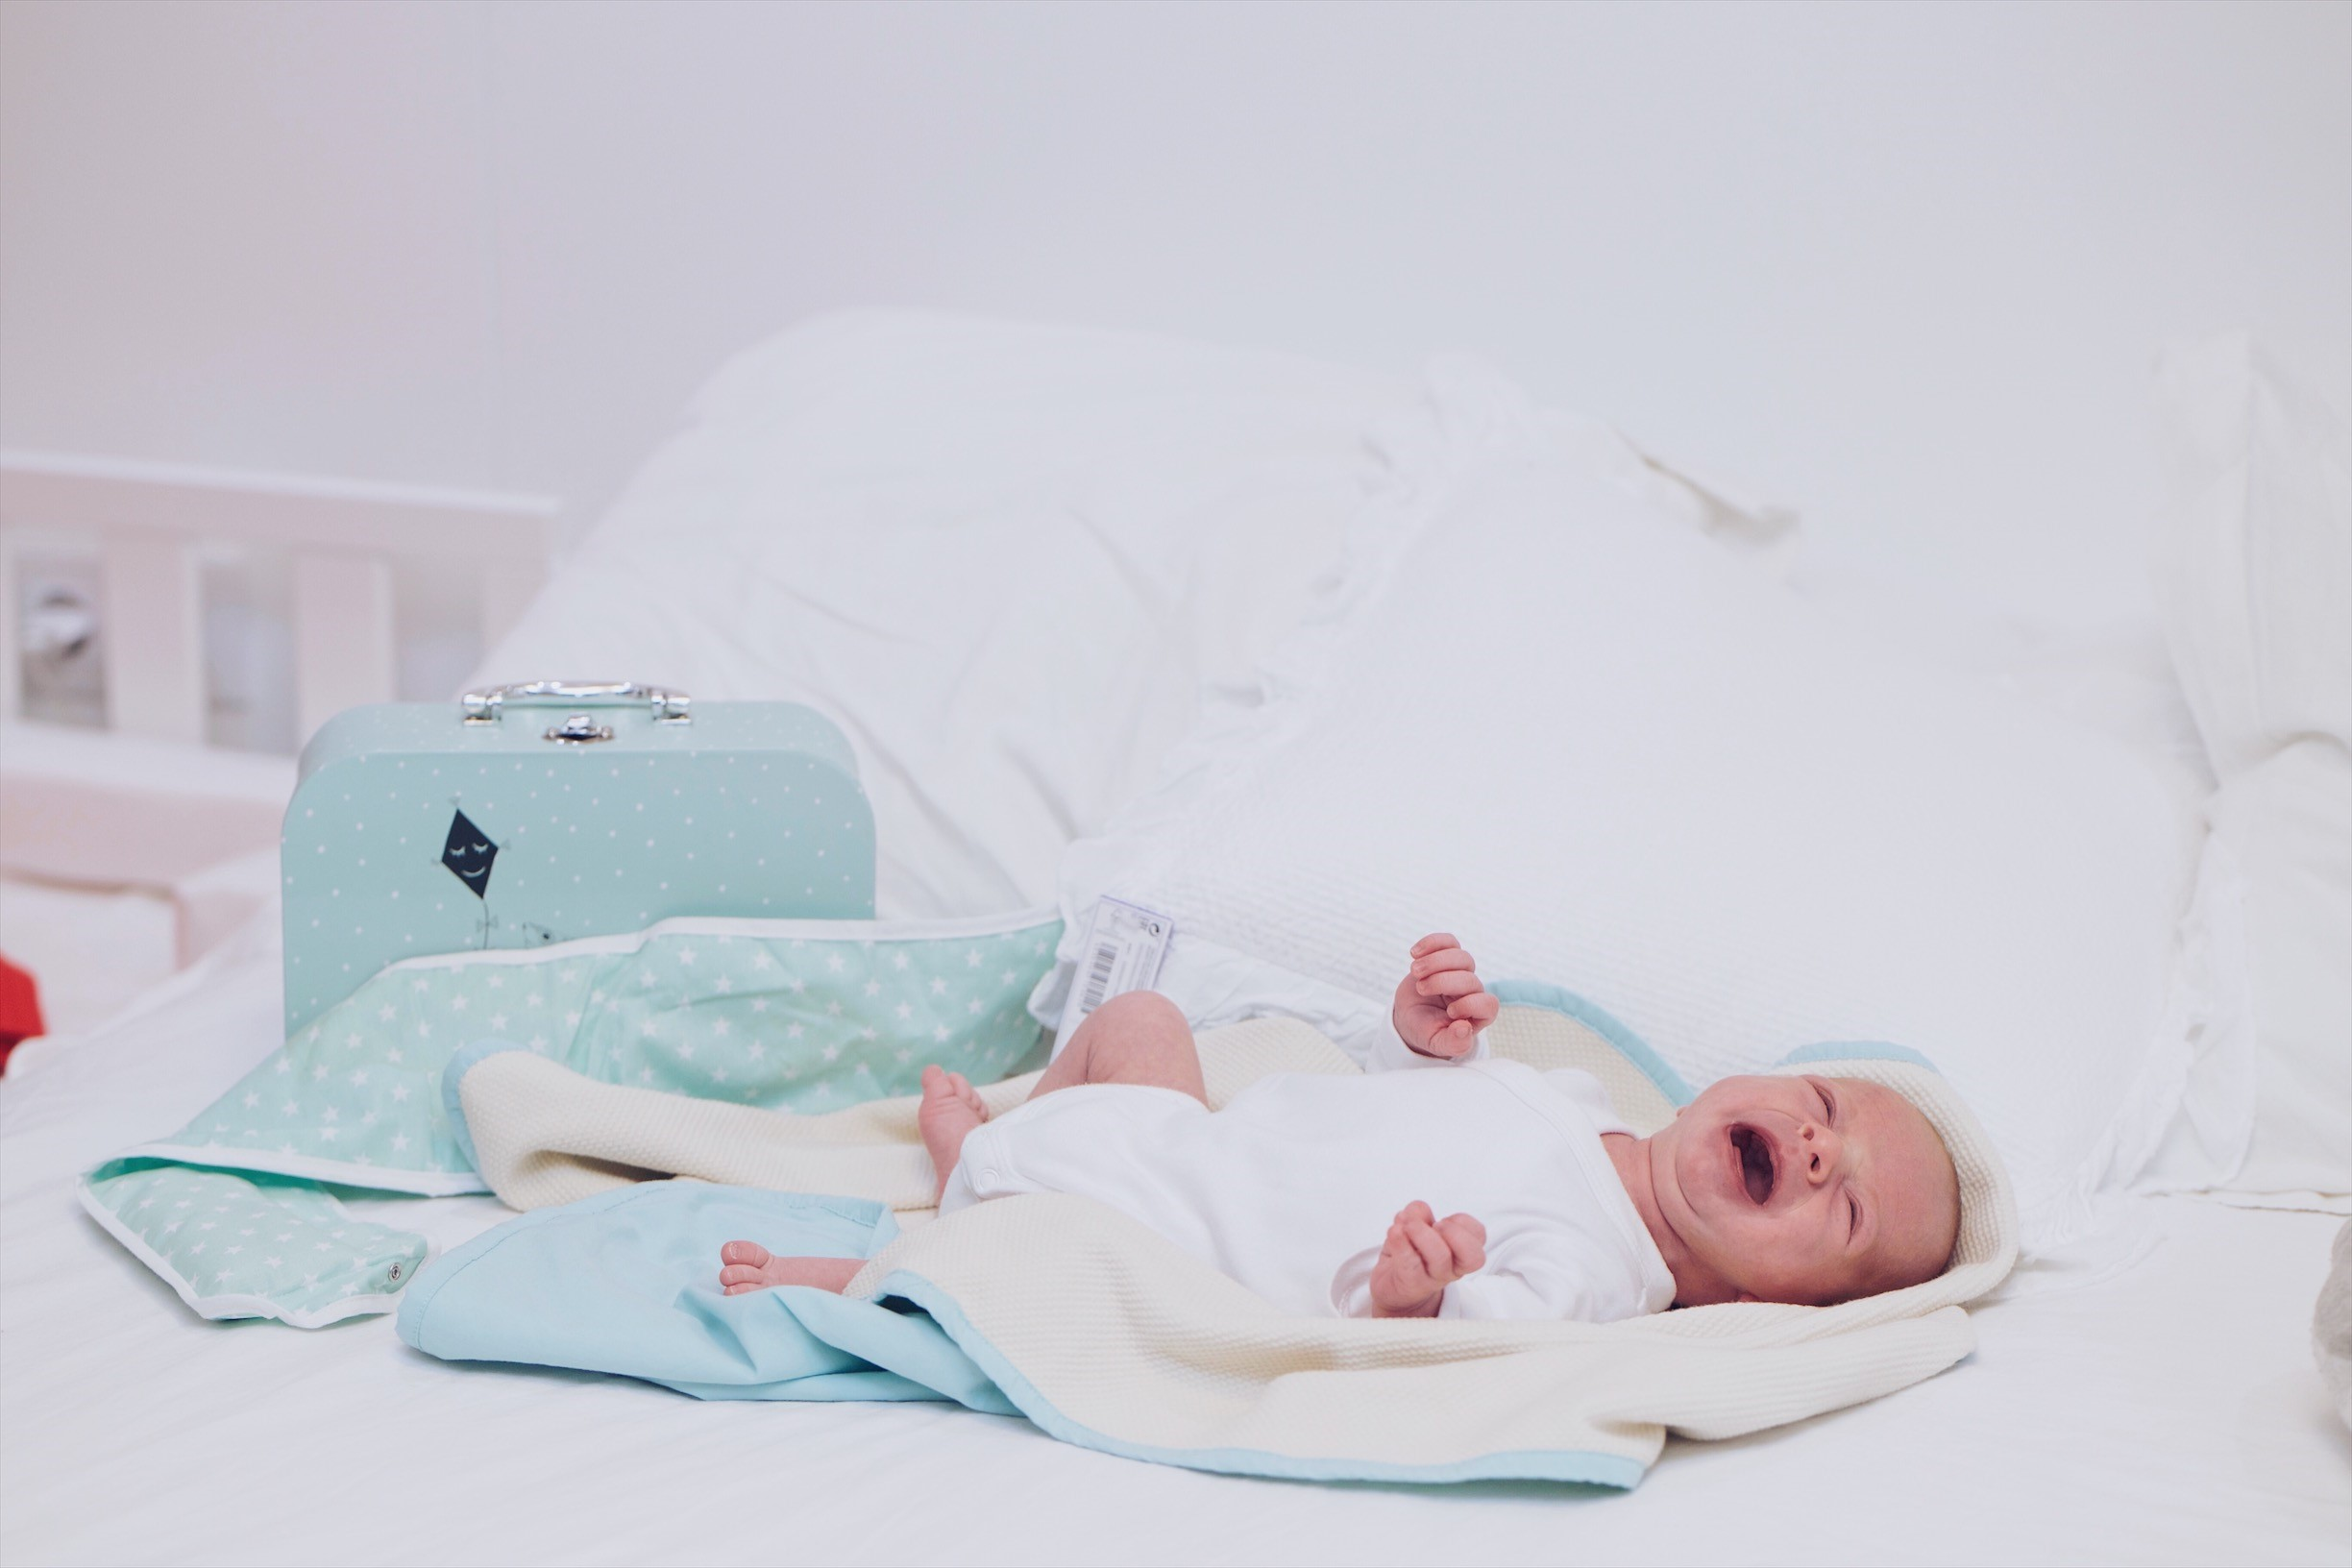 What do Pediatric Nurses recommend to relieve baby colic?